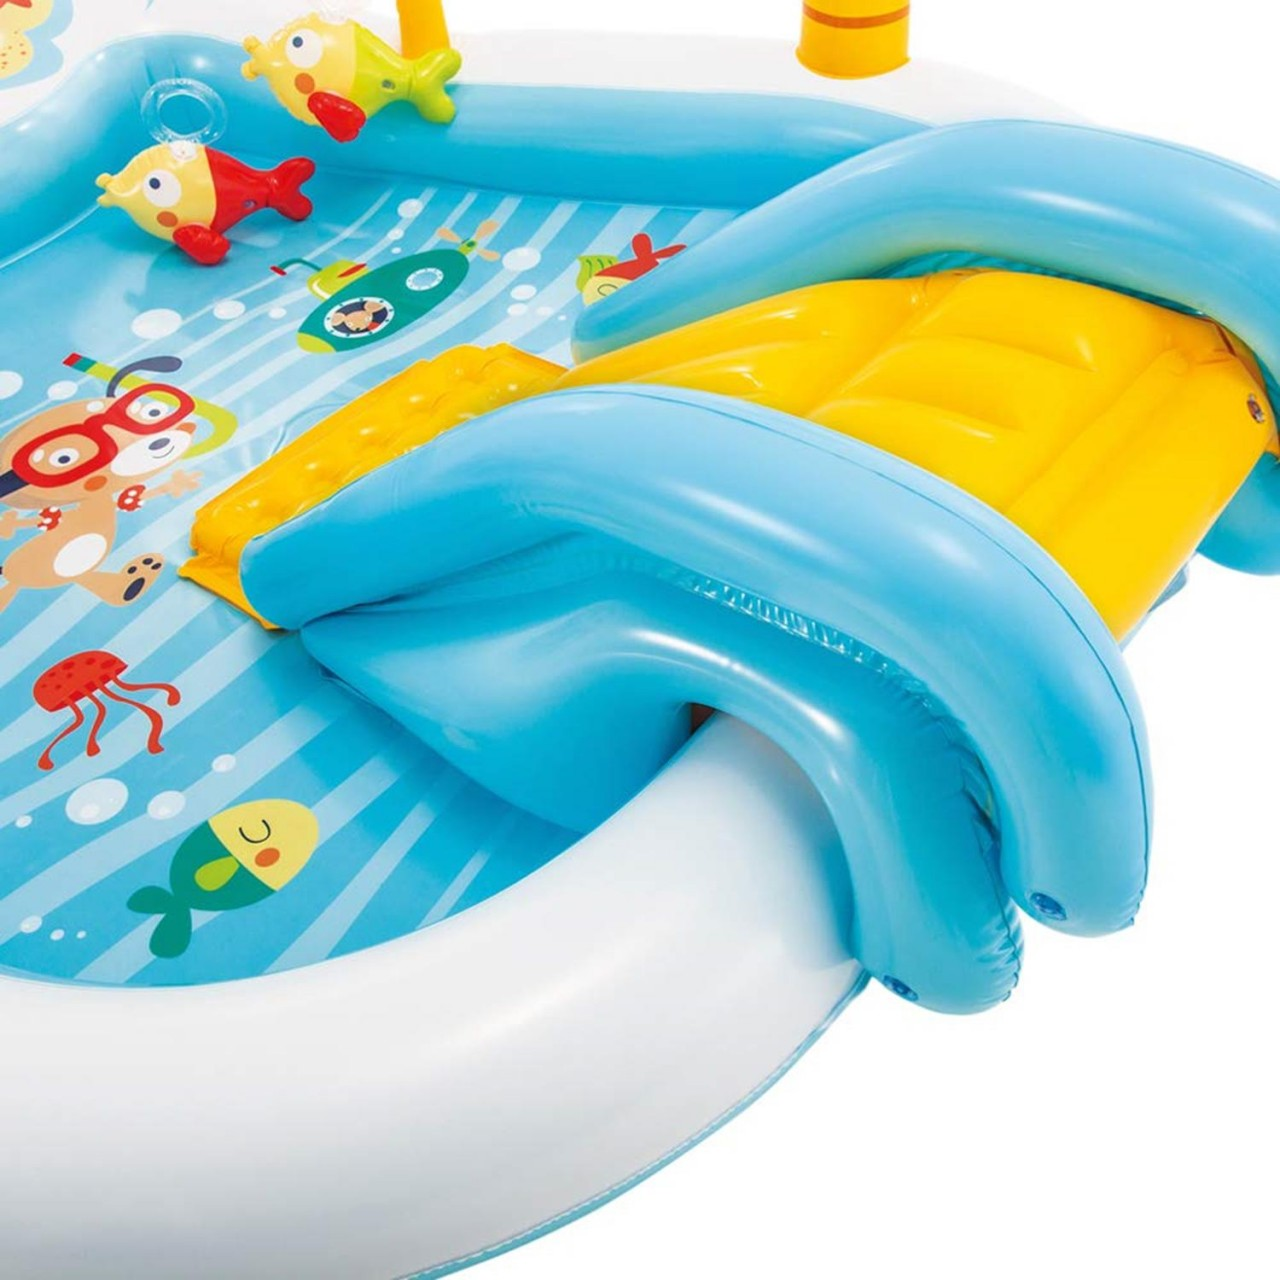 Intex Play Center Fishing Fun Planschbecken Pool Wasserrutsche aufblasbar 57162